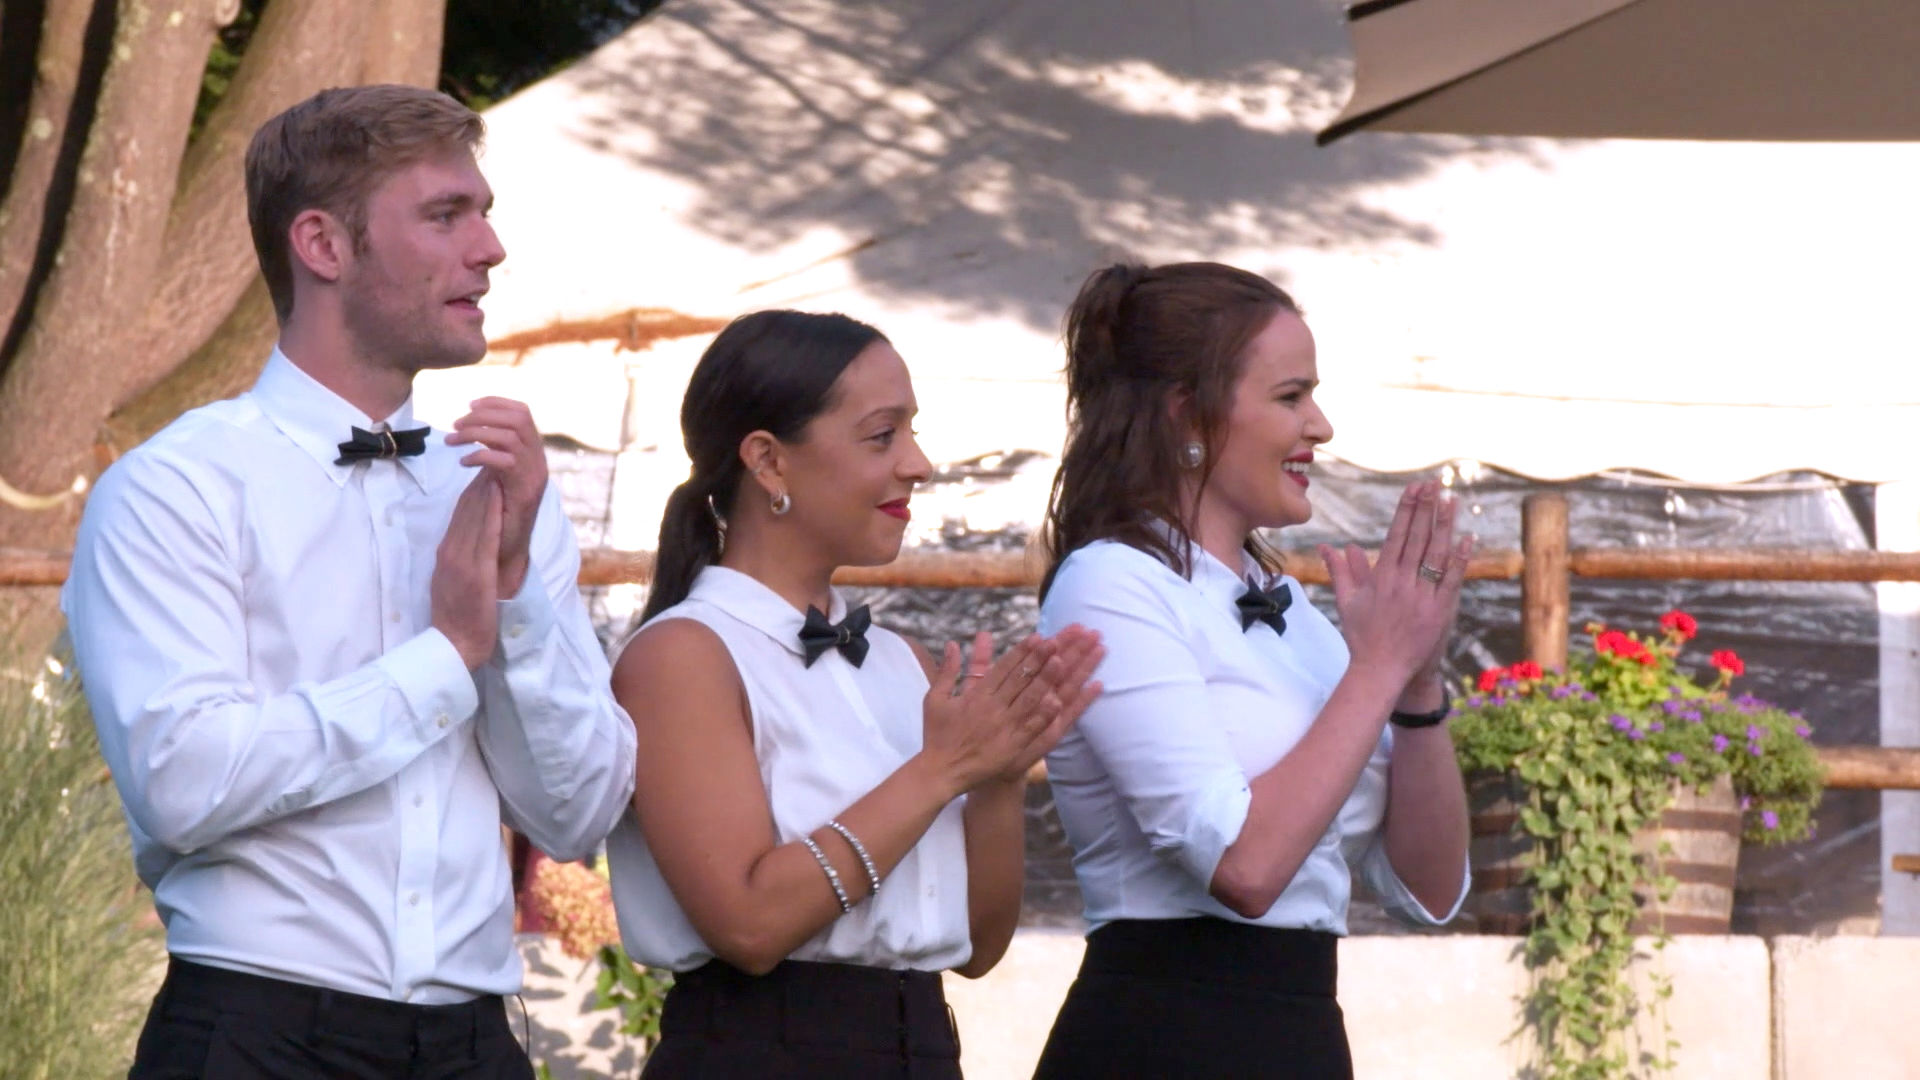 It's All Hands on Deck for This Camp Getaway Wedding!